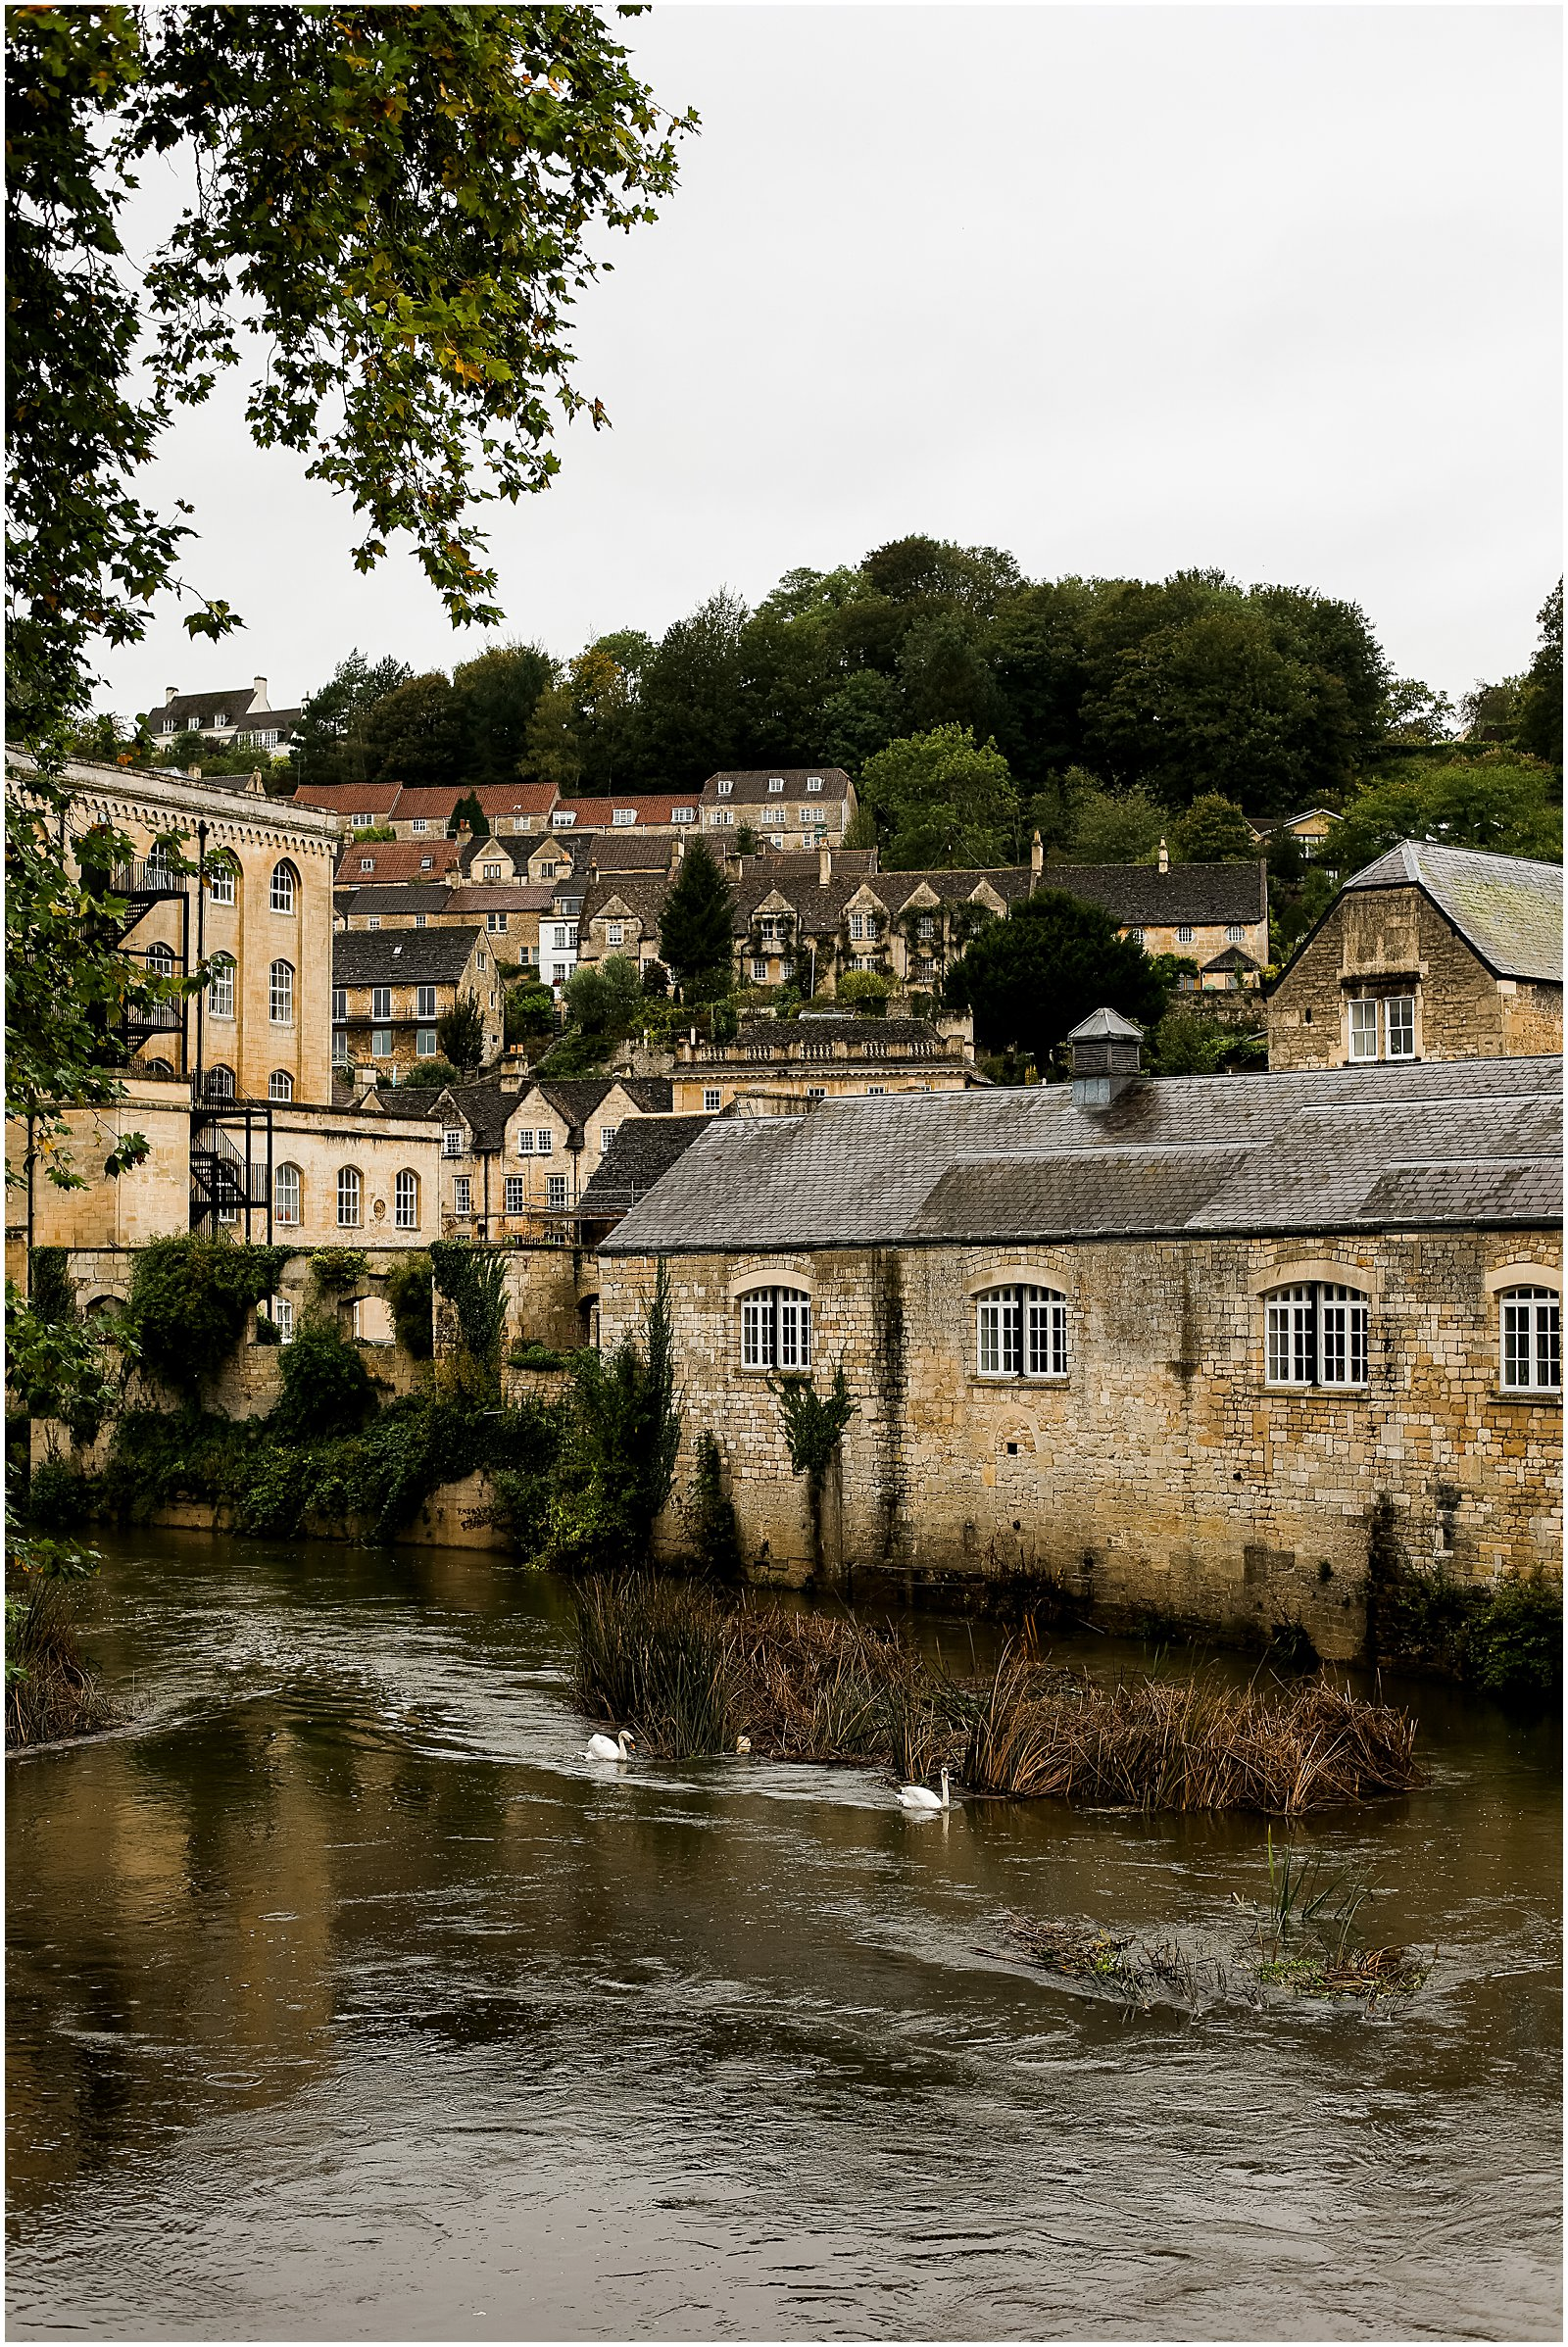 Bradford-on-Avon England photographed by Helena Woods